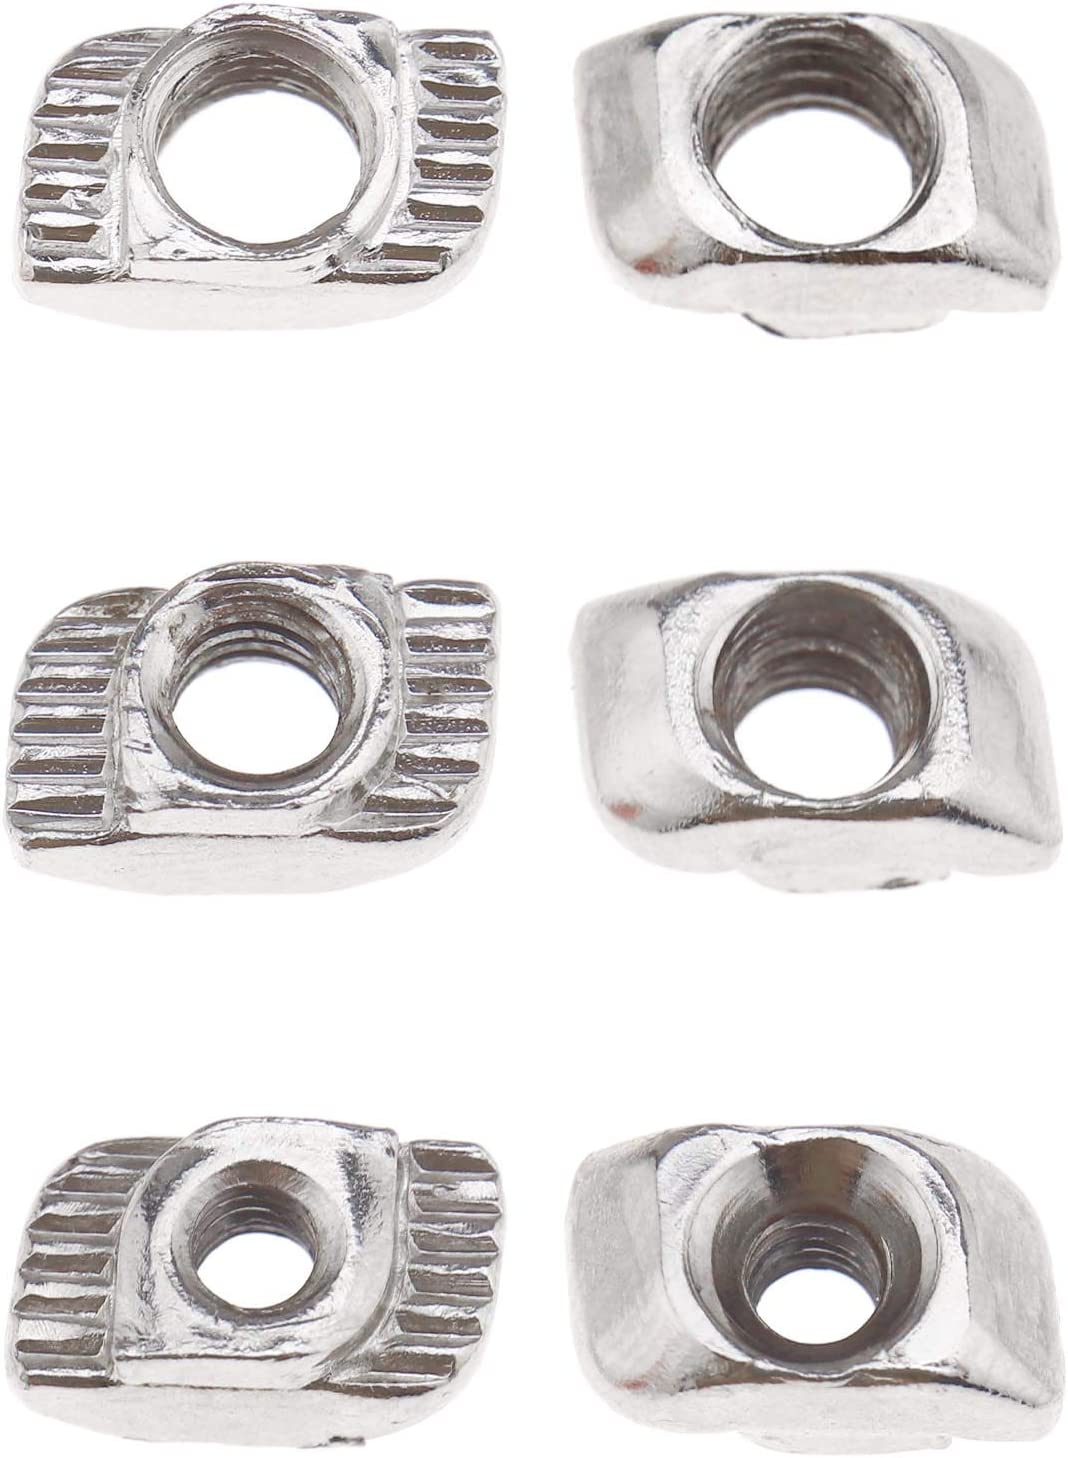 Creative-Idea 180Pcs 2020 Series M3 M4 M5 T Slot Nut Nickel Plated Carbon Steel with 4 Matching Wrenches